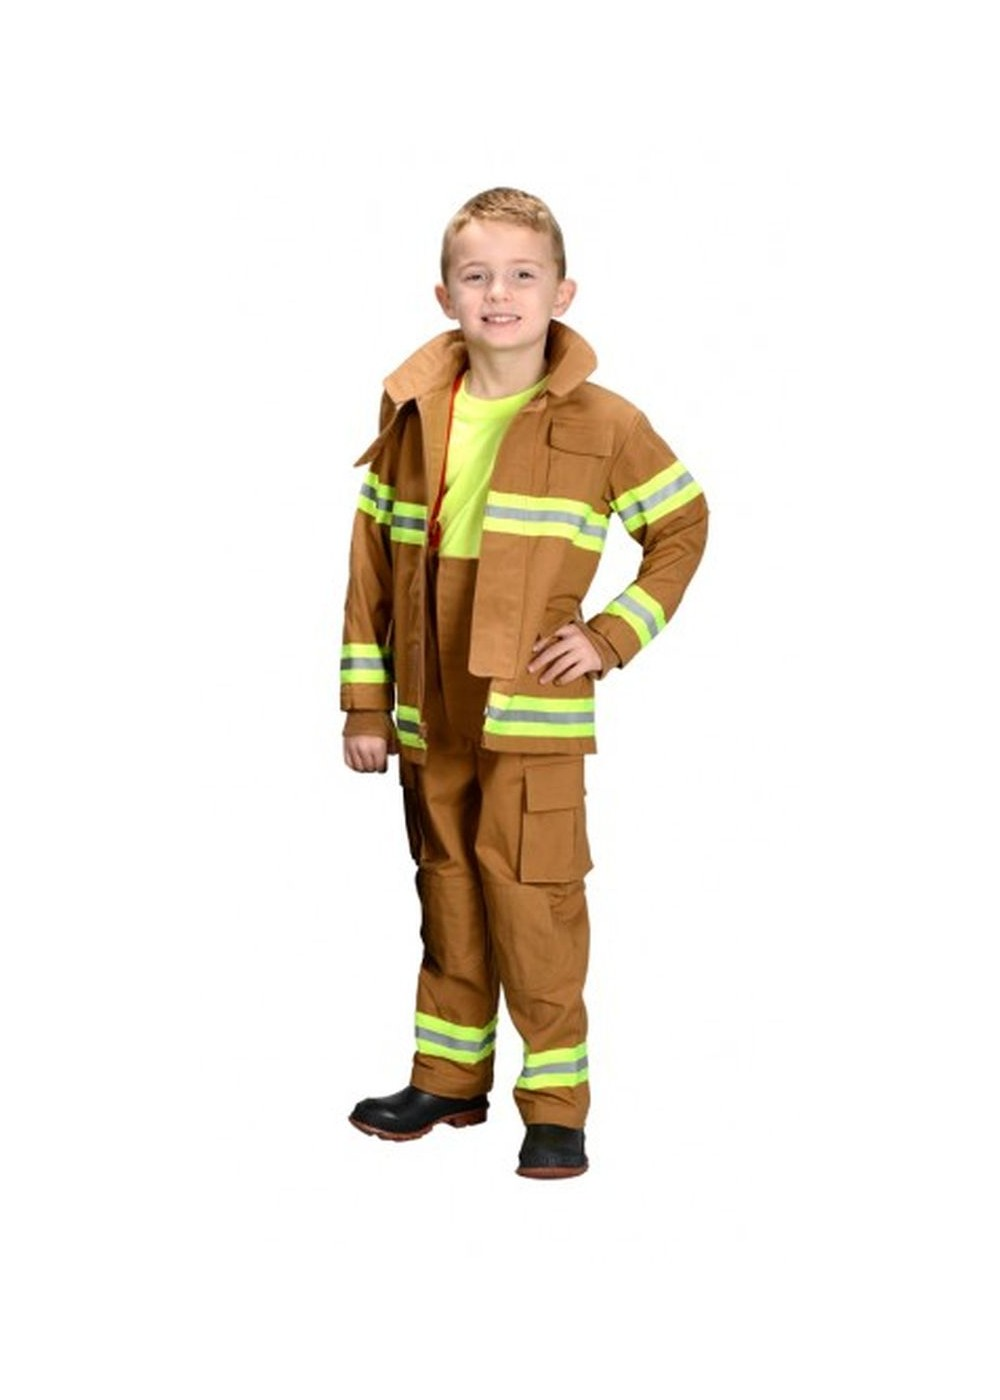 Profressional Firefighter Boys Costume by